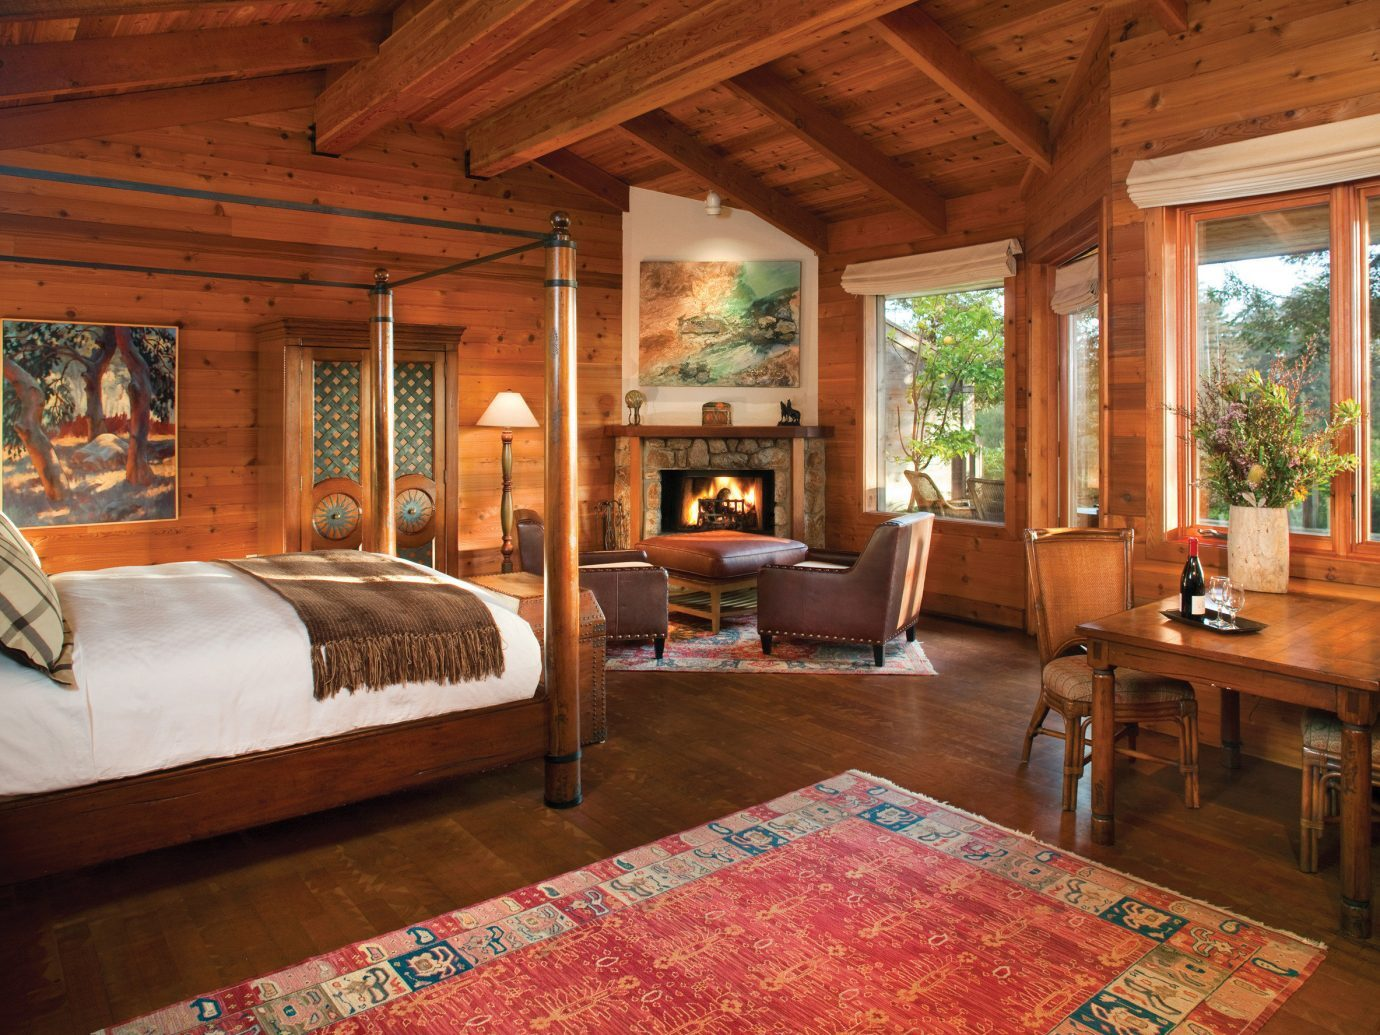 Bedroom at Ventana Big Sur